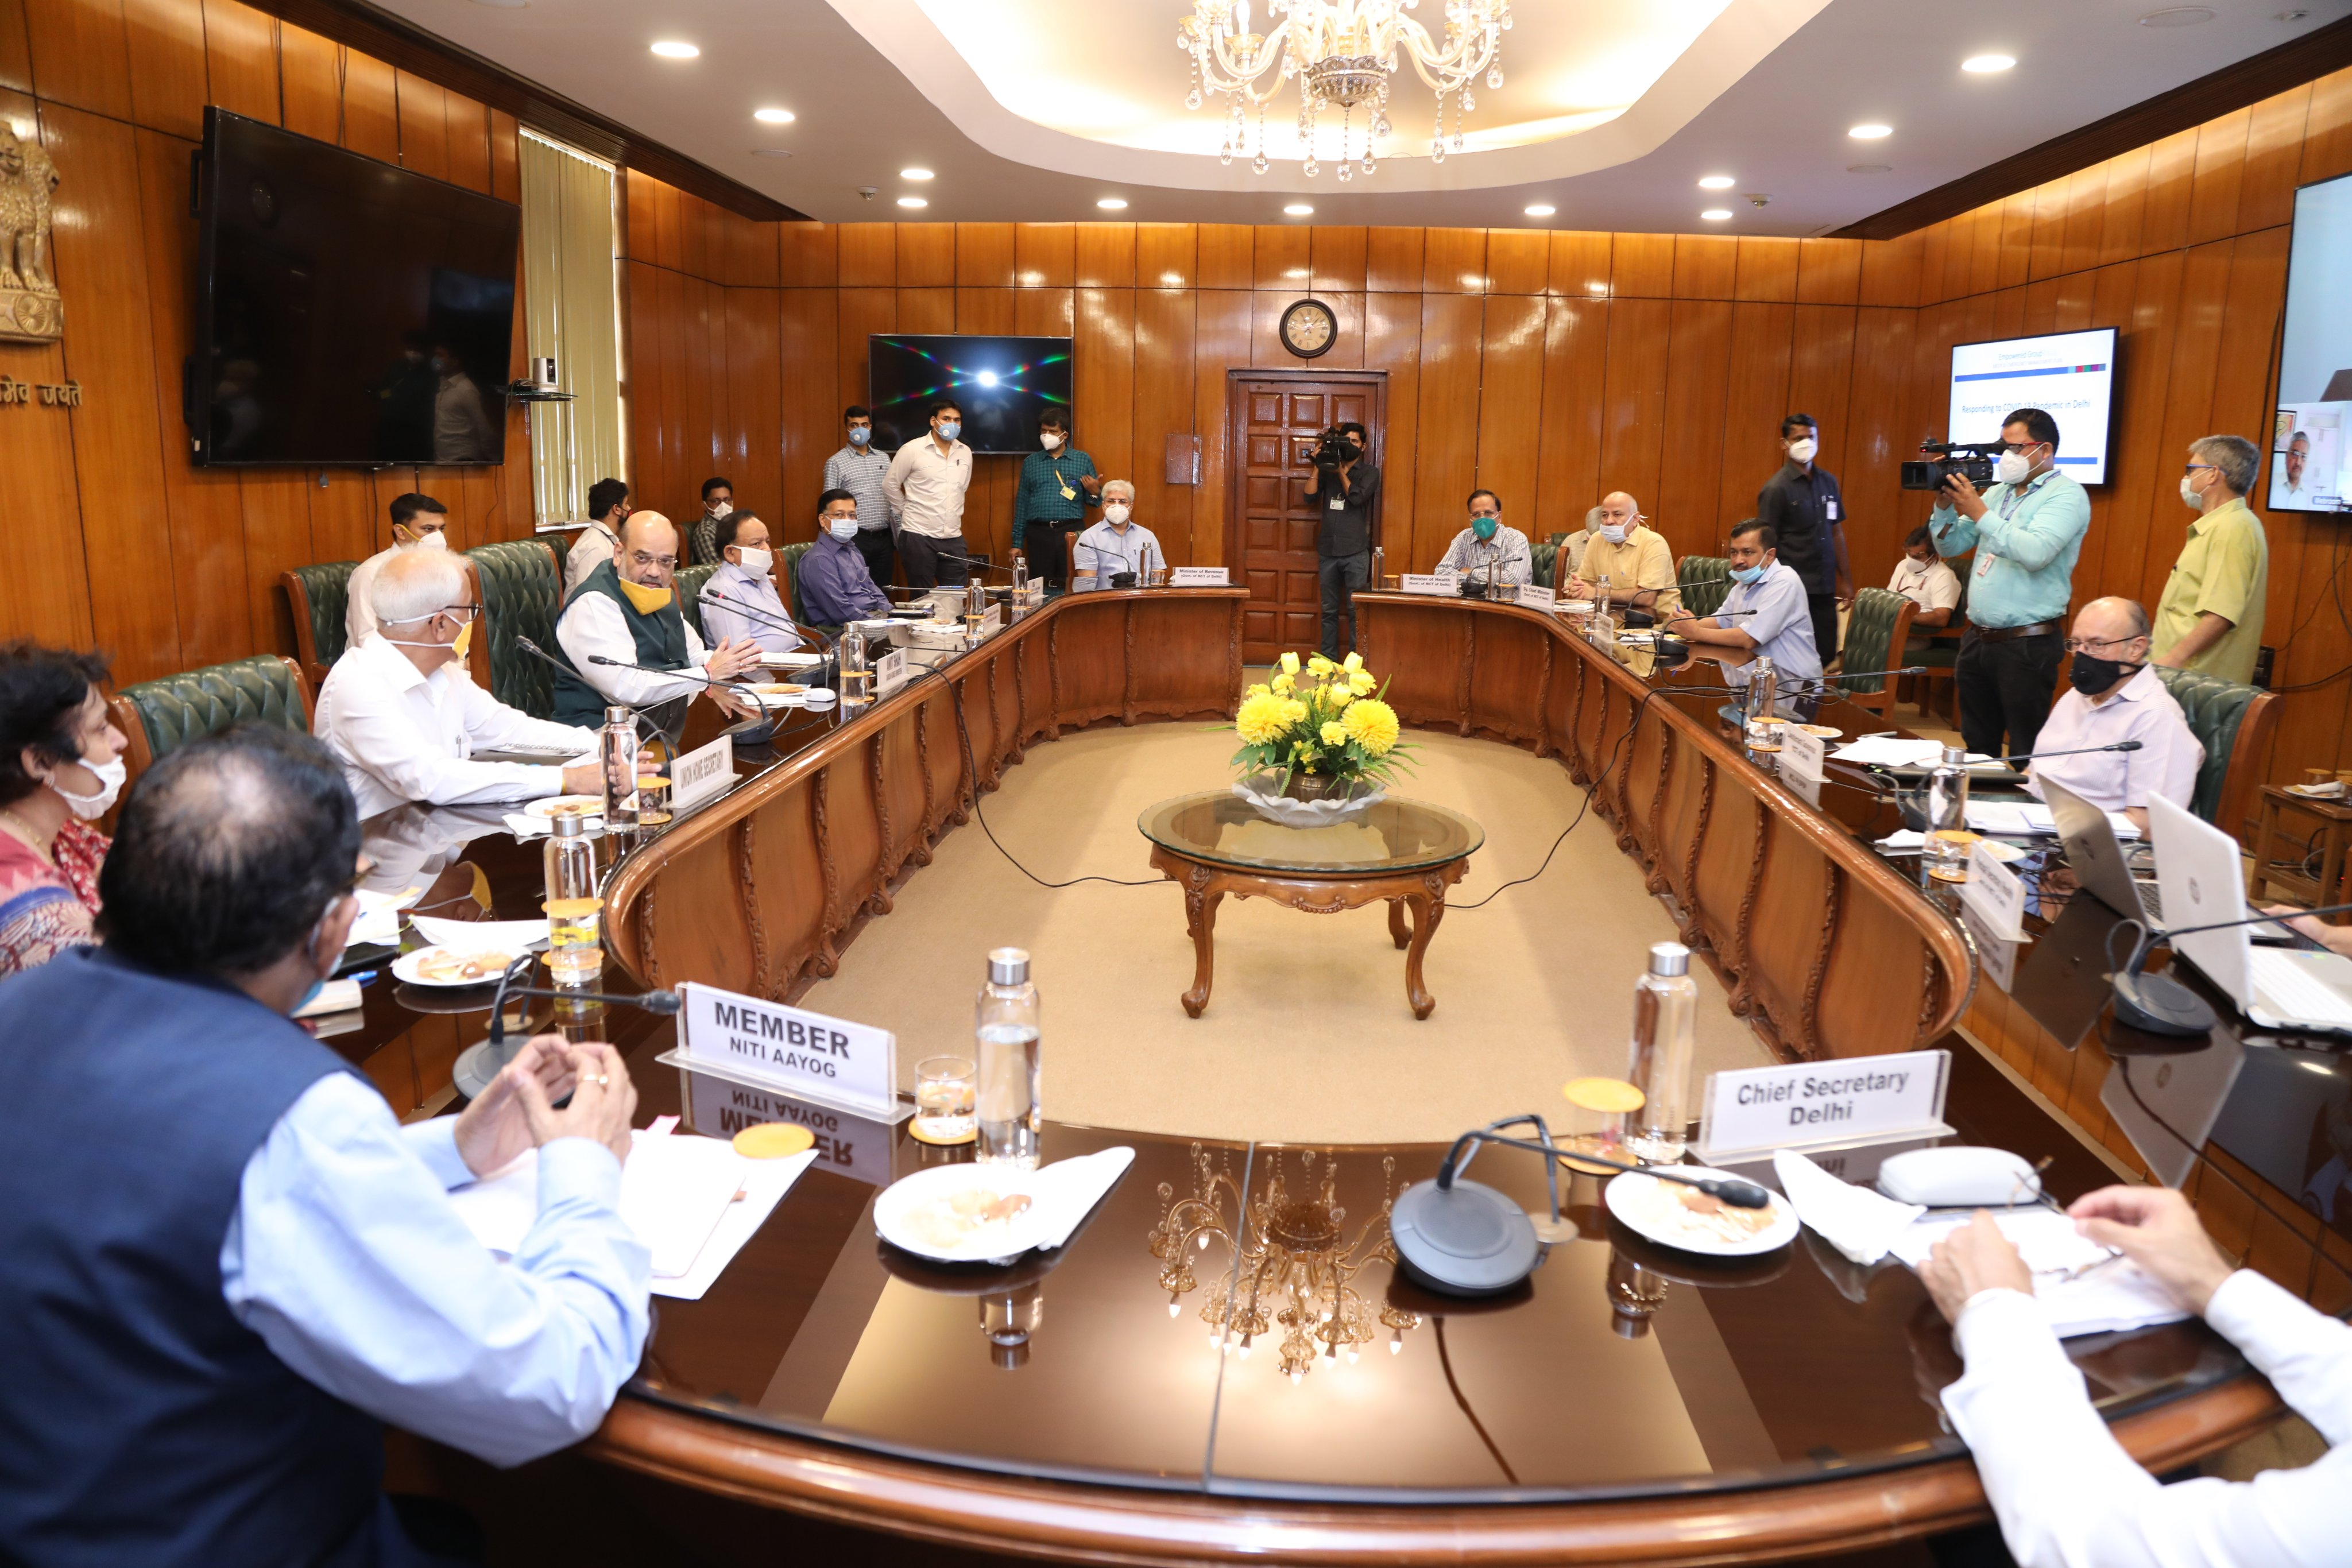 Home minister Amit Shah chairs a meeting with Delhi chief minister Arvind Kejriwal, LG Anil Baijal and senior officials of health and home ministries, among others, to review the current situation in the national capital regarding Covid-19, in New Delhi on Sunday, June 14, 2020.